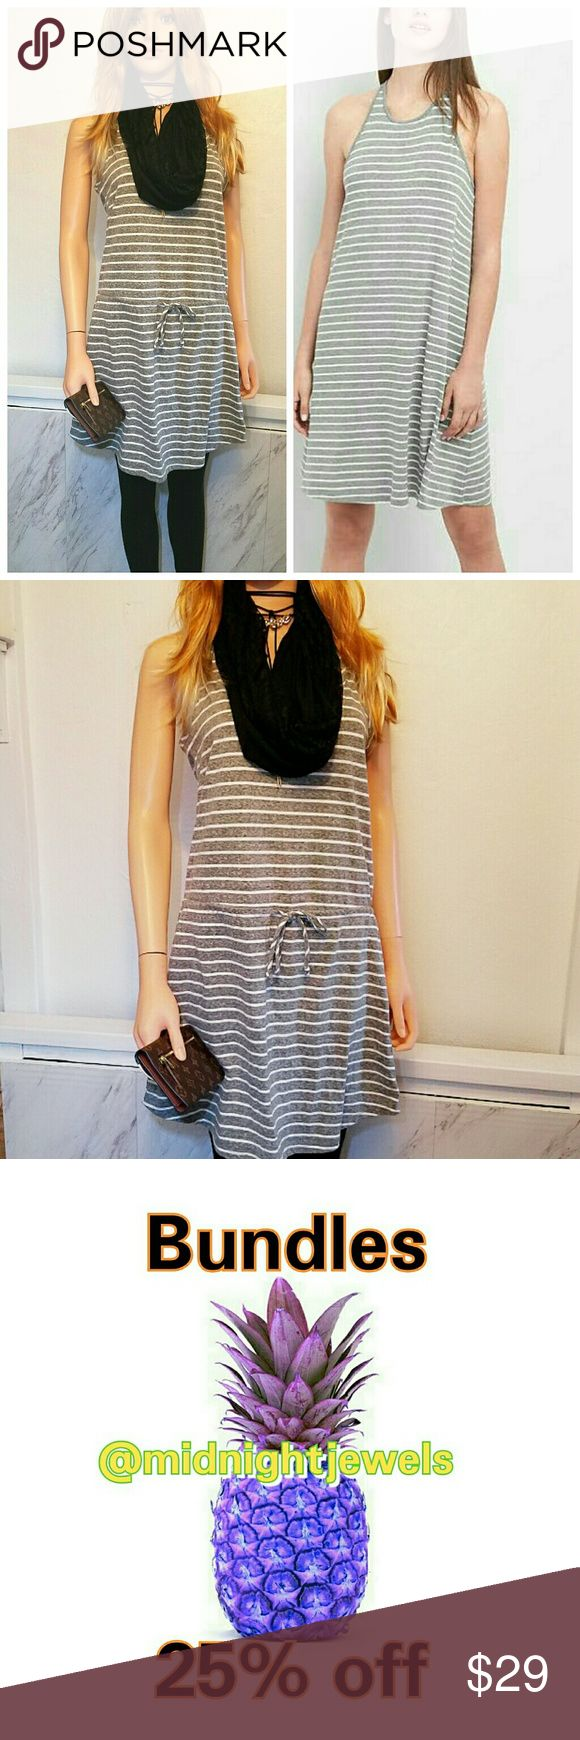 NEW Jersey Gap Knit Gray Dress Size Small Stripes Soft jersey knit gray & White tank dress Crewneck, Allover stripes. A-line silhouette with an easy, relaxed fit. Hits at mid thigh.  . Size Small   . Brand GAP   . Condition NEW   . Fit smooth  . Style Dress  . Color Gray white  . Machine wash low tumble dry  . Bundle & SAVE 25% off 🍍  No additional shipping charge when you purchase more from my closet   Every purchase will be packed with Care & a Special FREE GIFT 🎁   🍍 25% OFF on bundles…